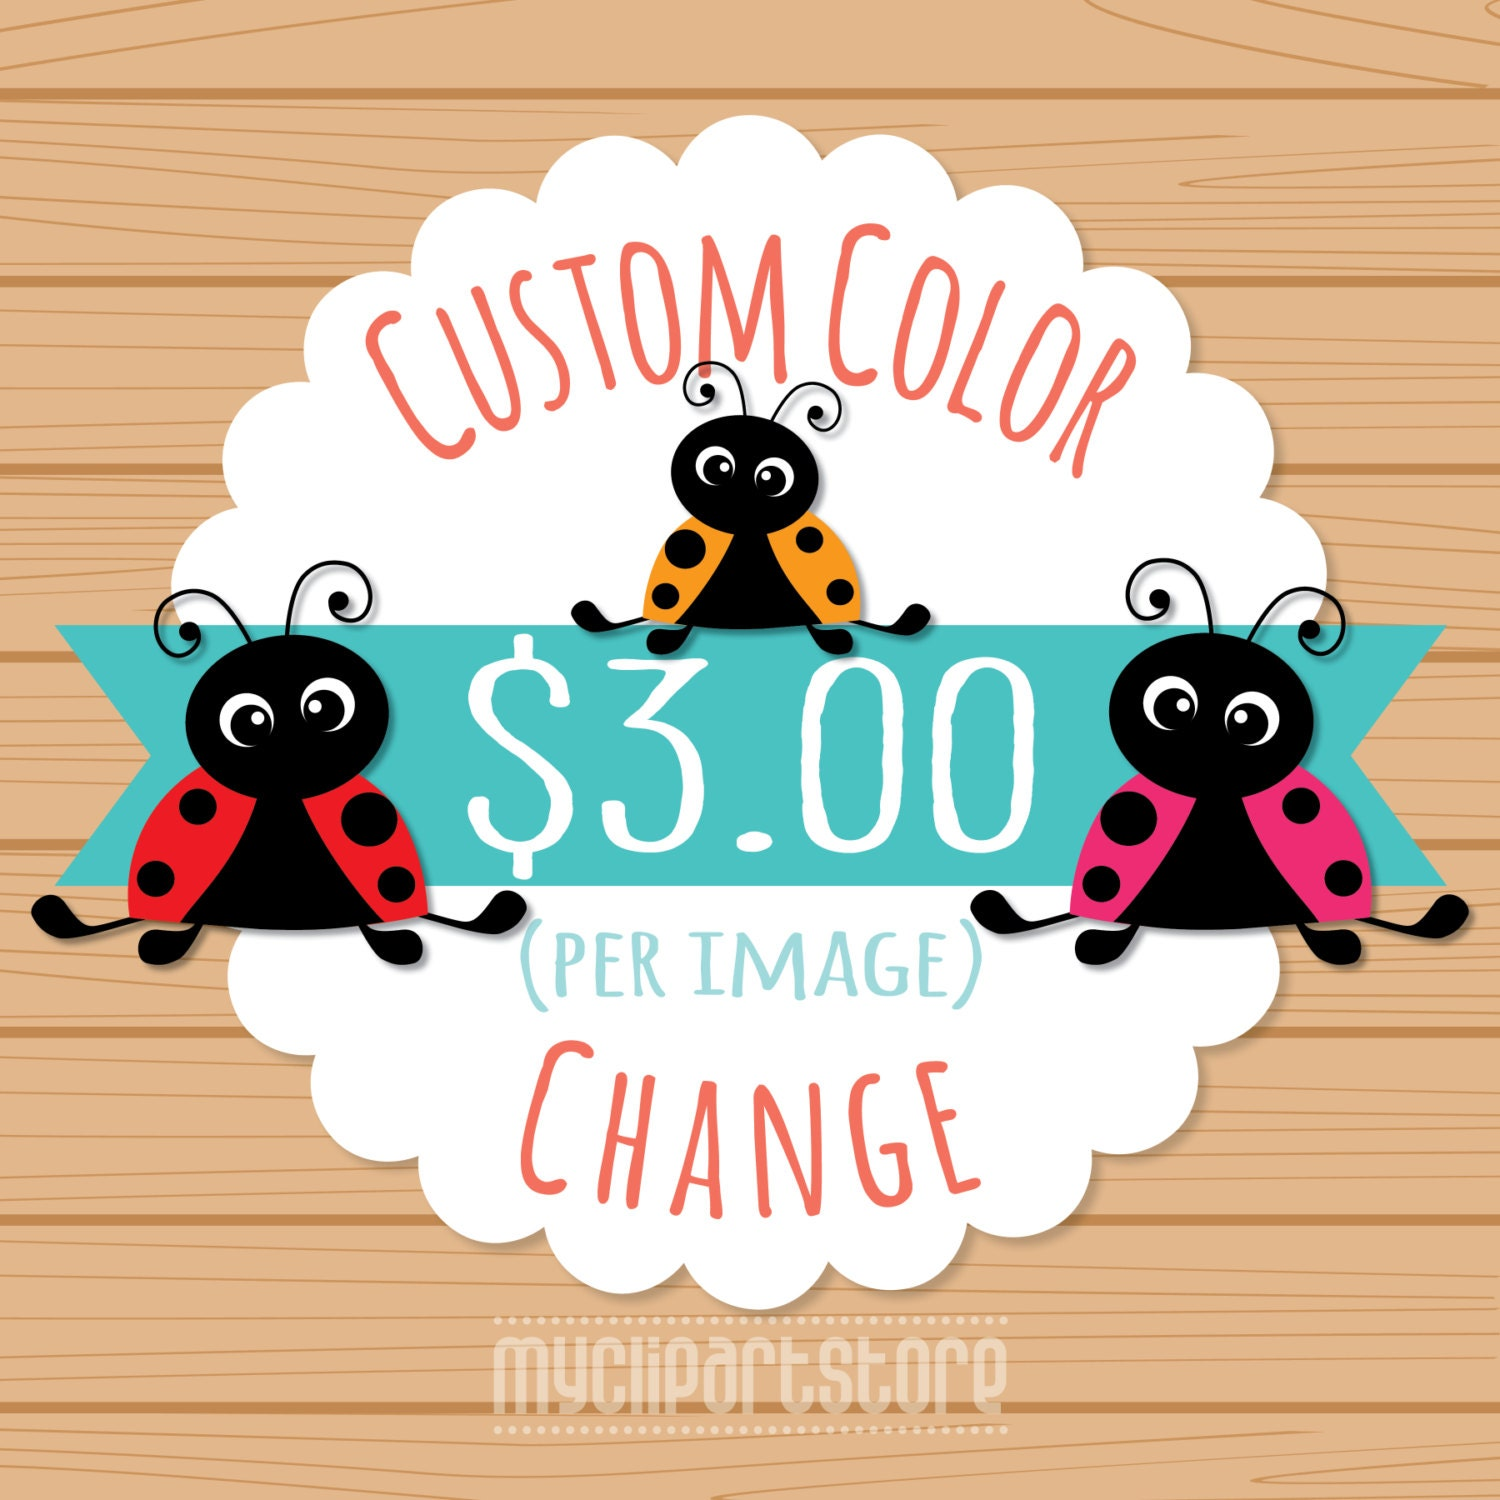 Custom Color Change For 1 One Non-exclusive Clipart Custom